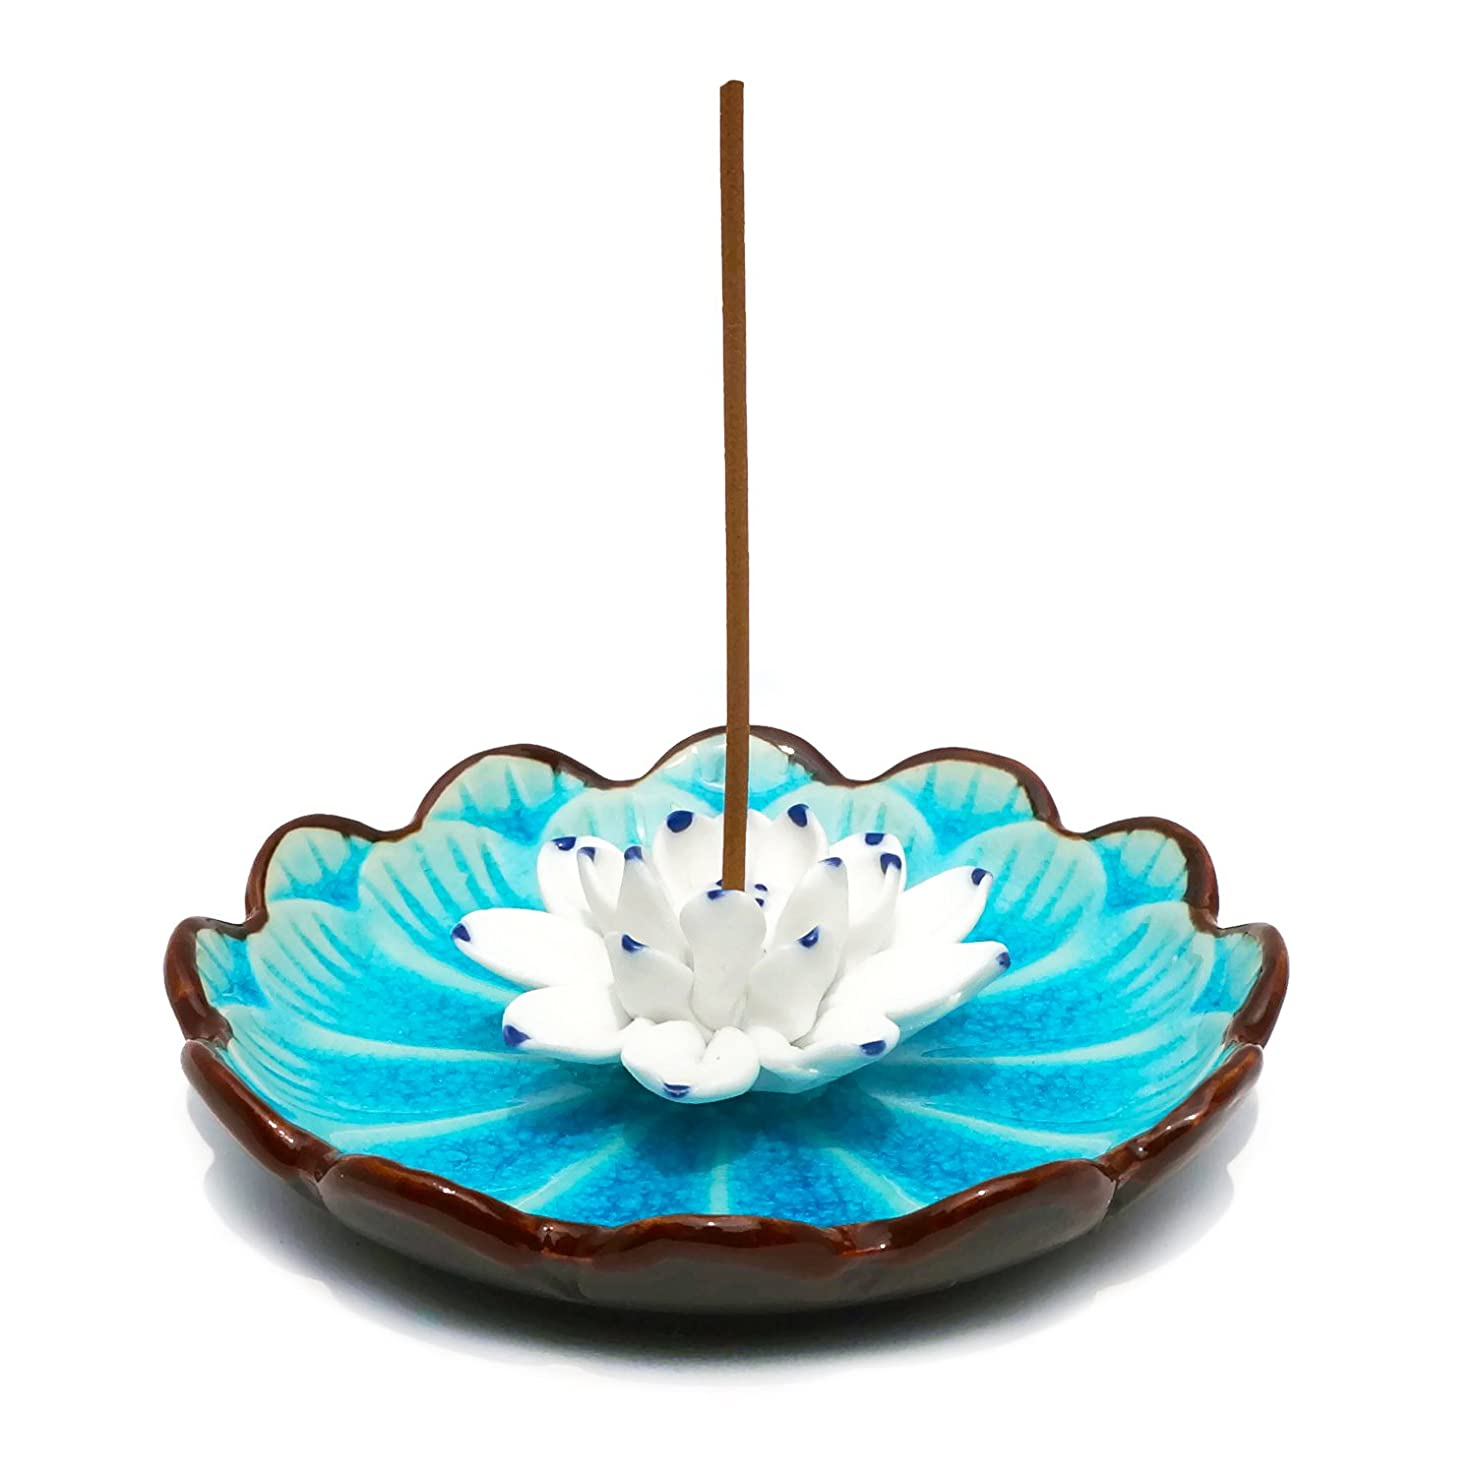 繊細流用する死傷者(Light Blue) - Incense Stick Burner Holder - Porcelain Decorative Flower Incense Burner Bowl - Ceramic Incense Ash Catcher Tray (Light Blue)